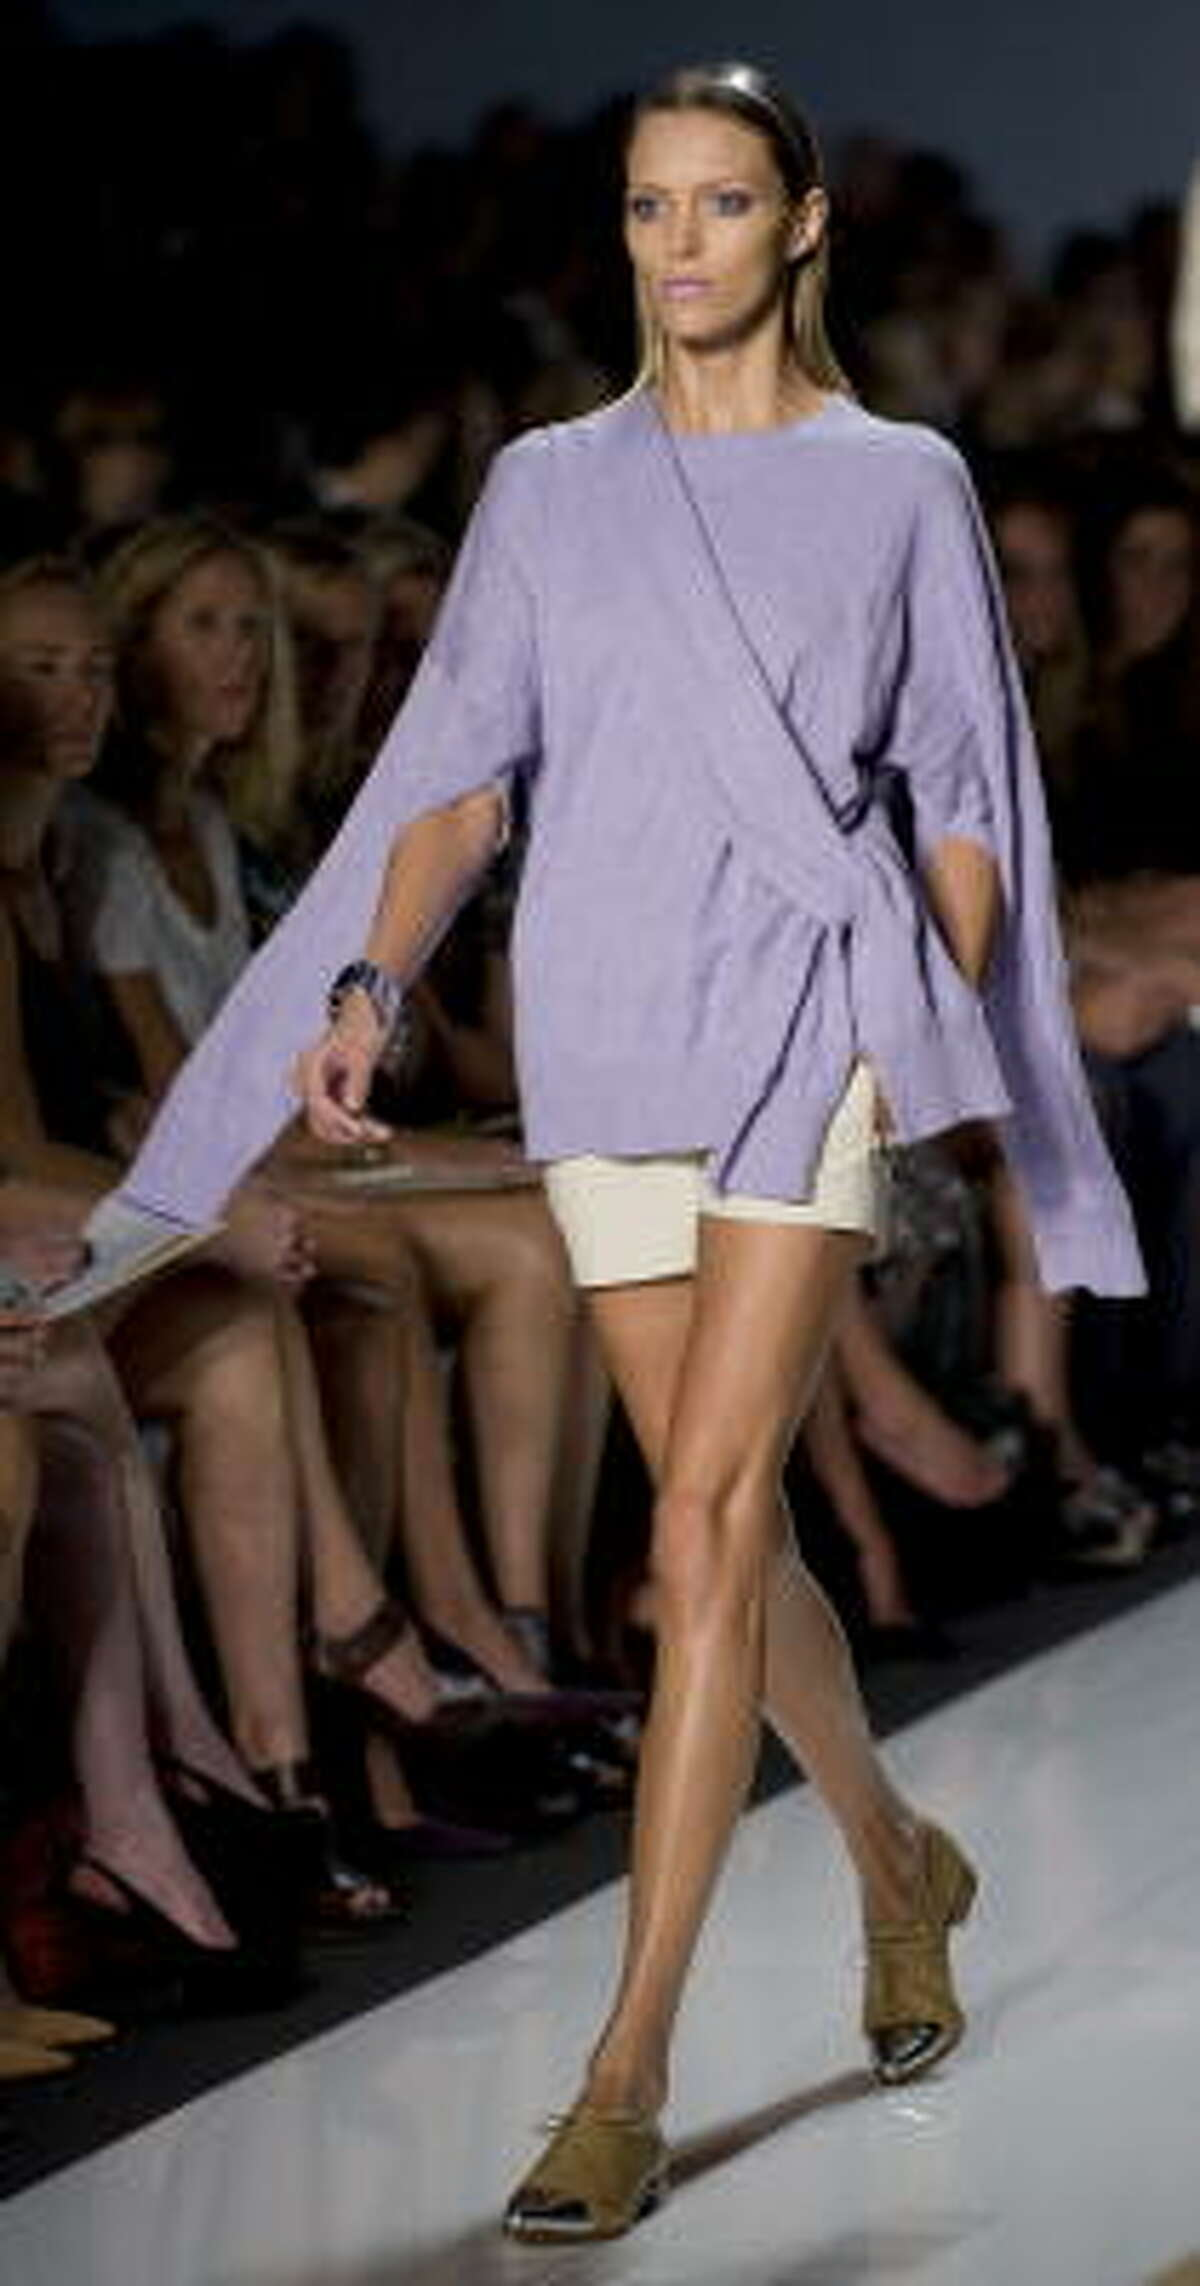 Amp up your legs with shorts. Balance out over-exposure of skin with a long sleeved, less revealing top.